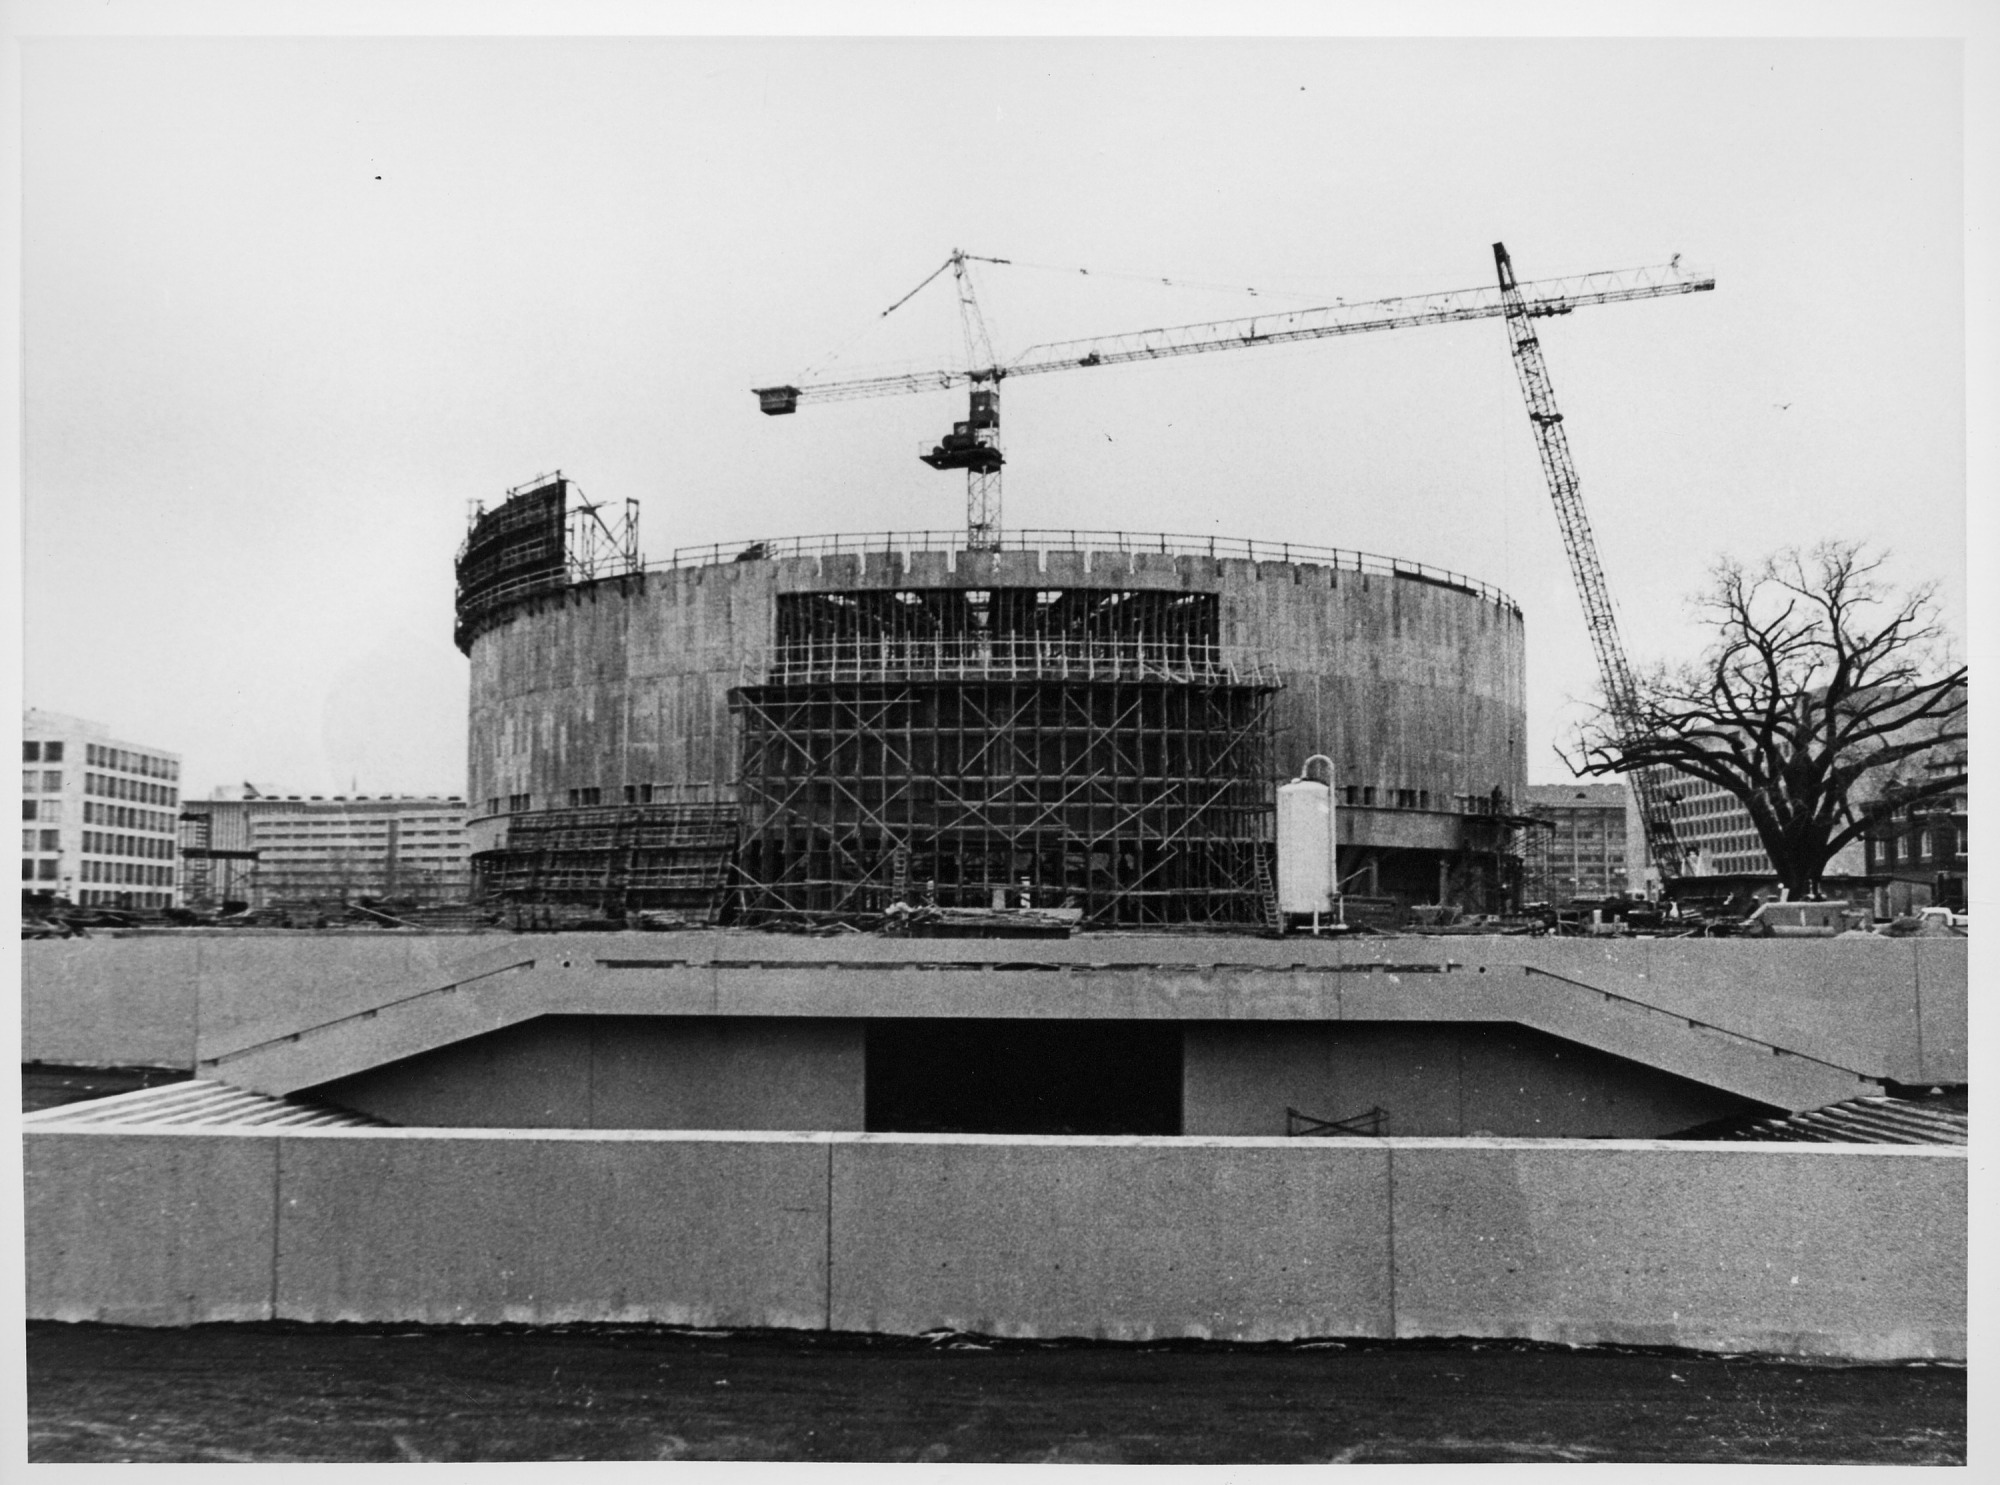 Hirshhorn Museum Construction, by Unknown, 1972, Smithsonian Archives - History Div, 2002-12205.